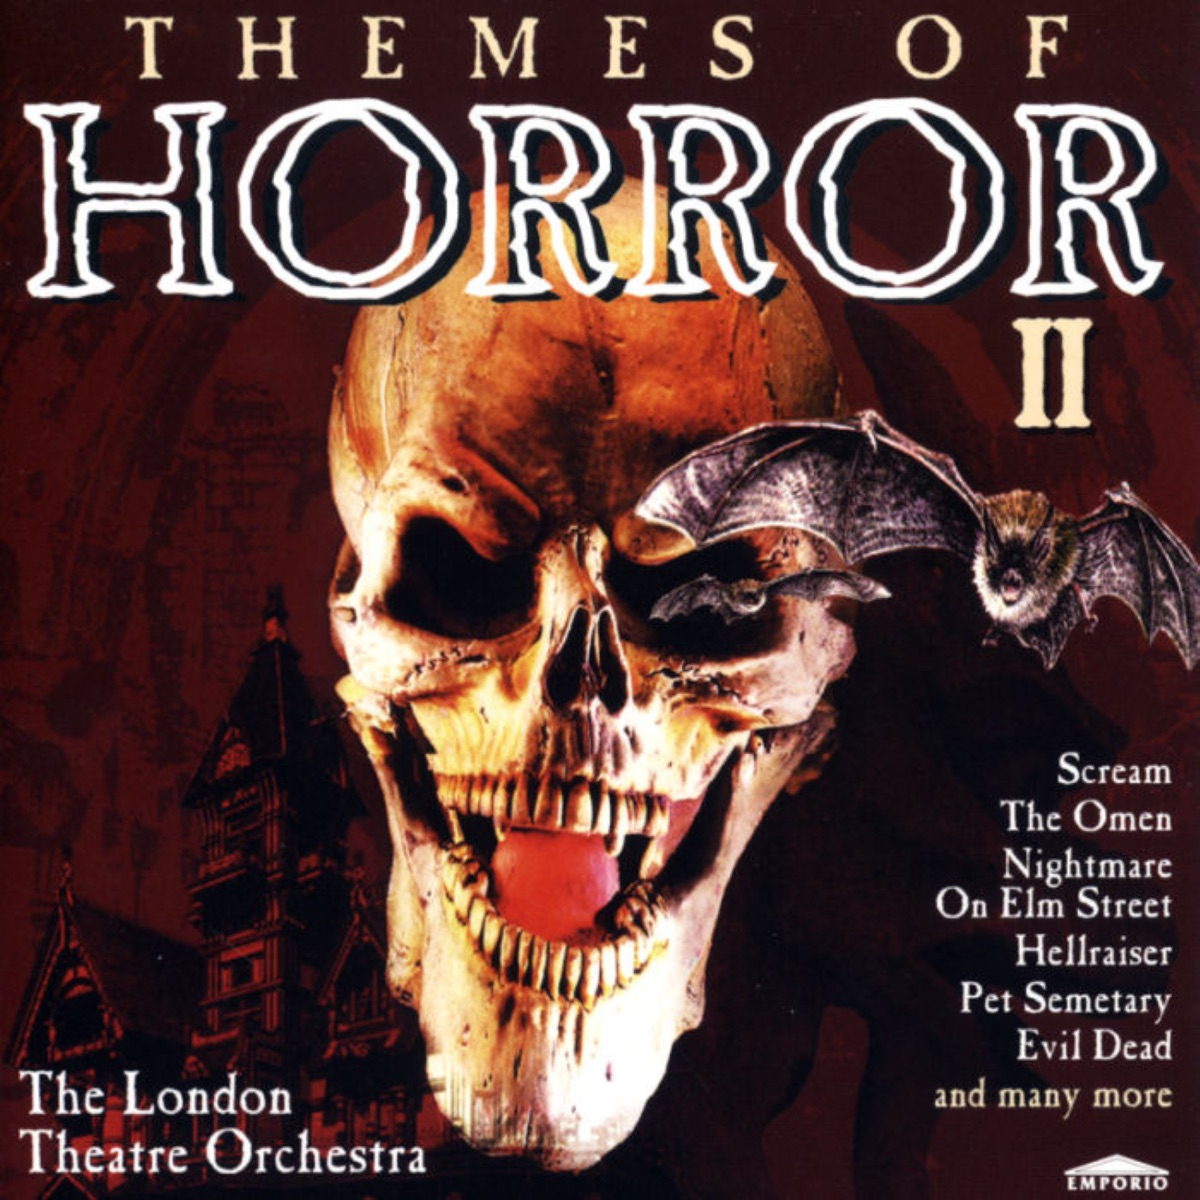 Themes of Horror 2 Halloween Album Cover by The London Theatre Orchestra